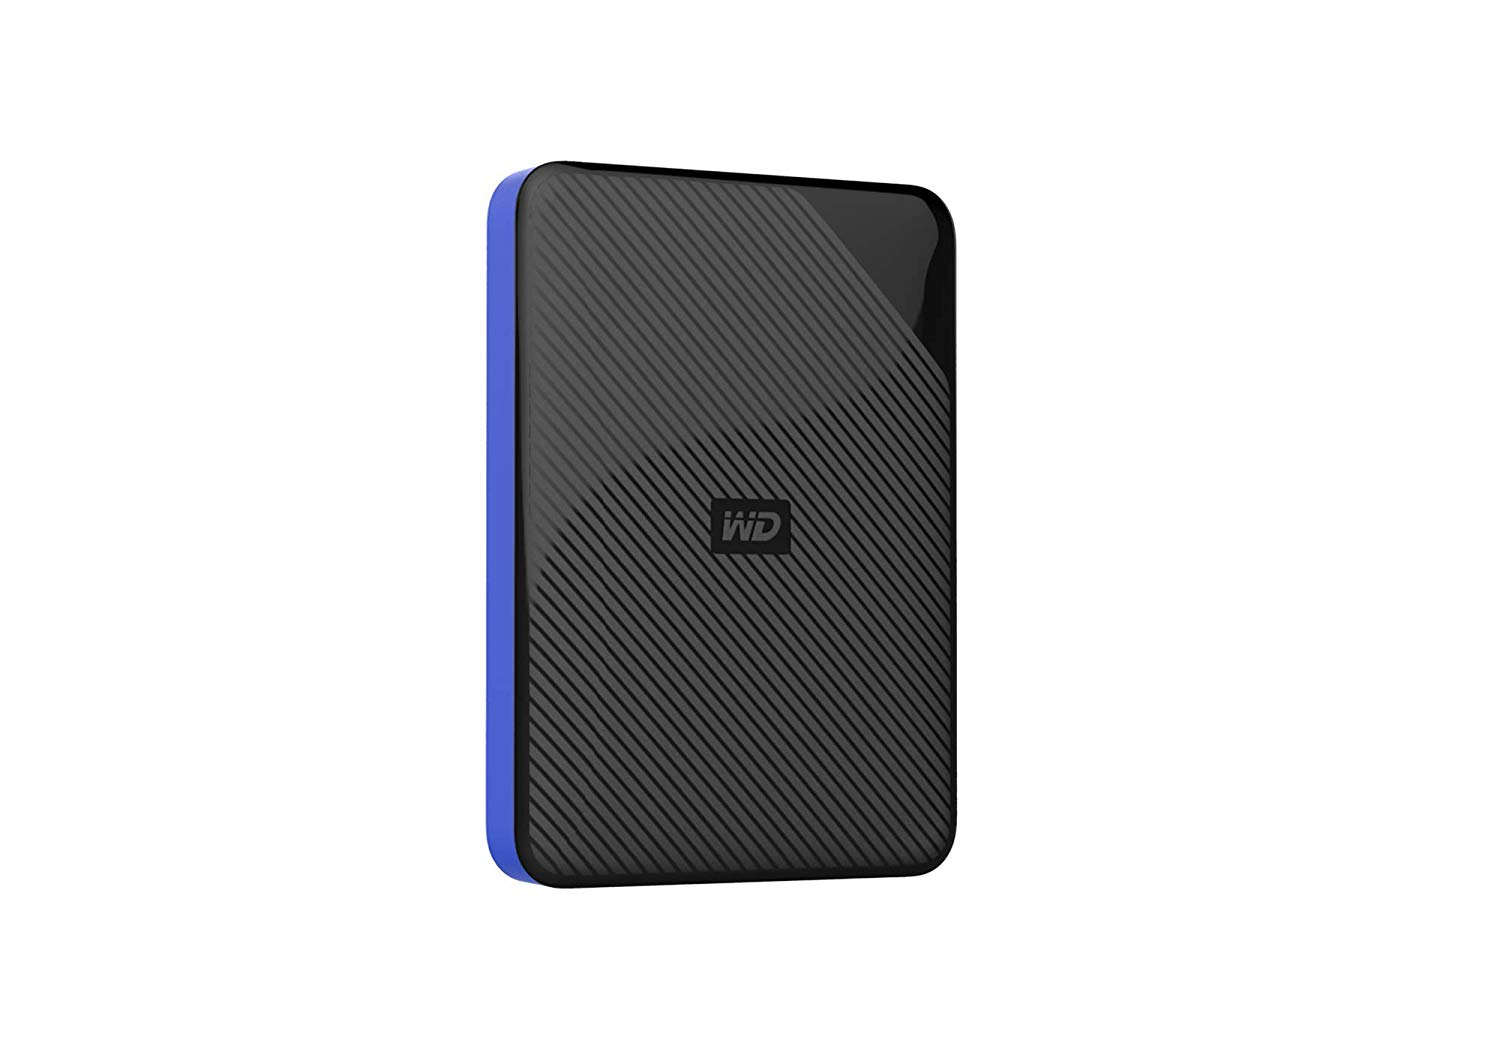 WD 2TB Gaming Drive Works with Playstation 4 Portable External Hard Drive  WDBDFF0020BBK WESN